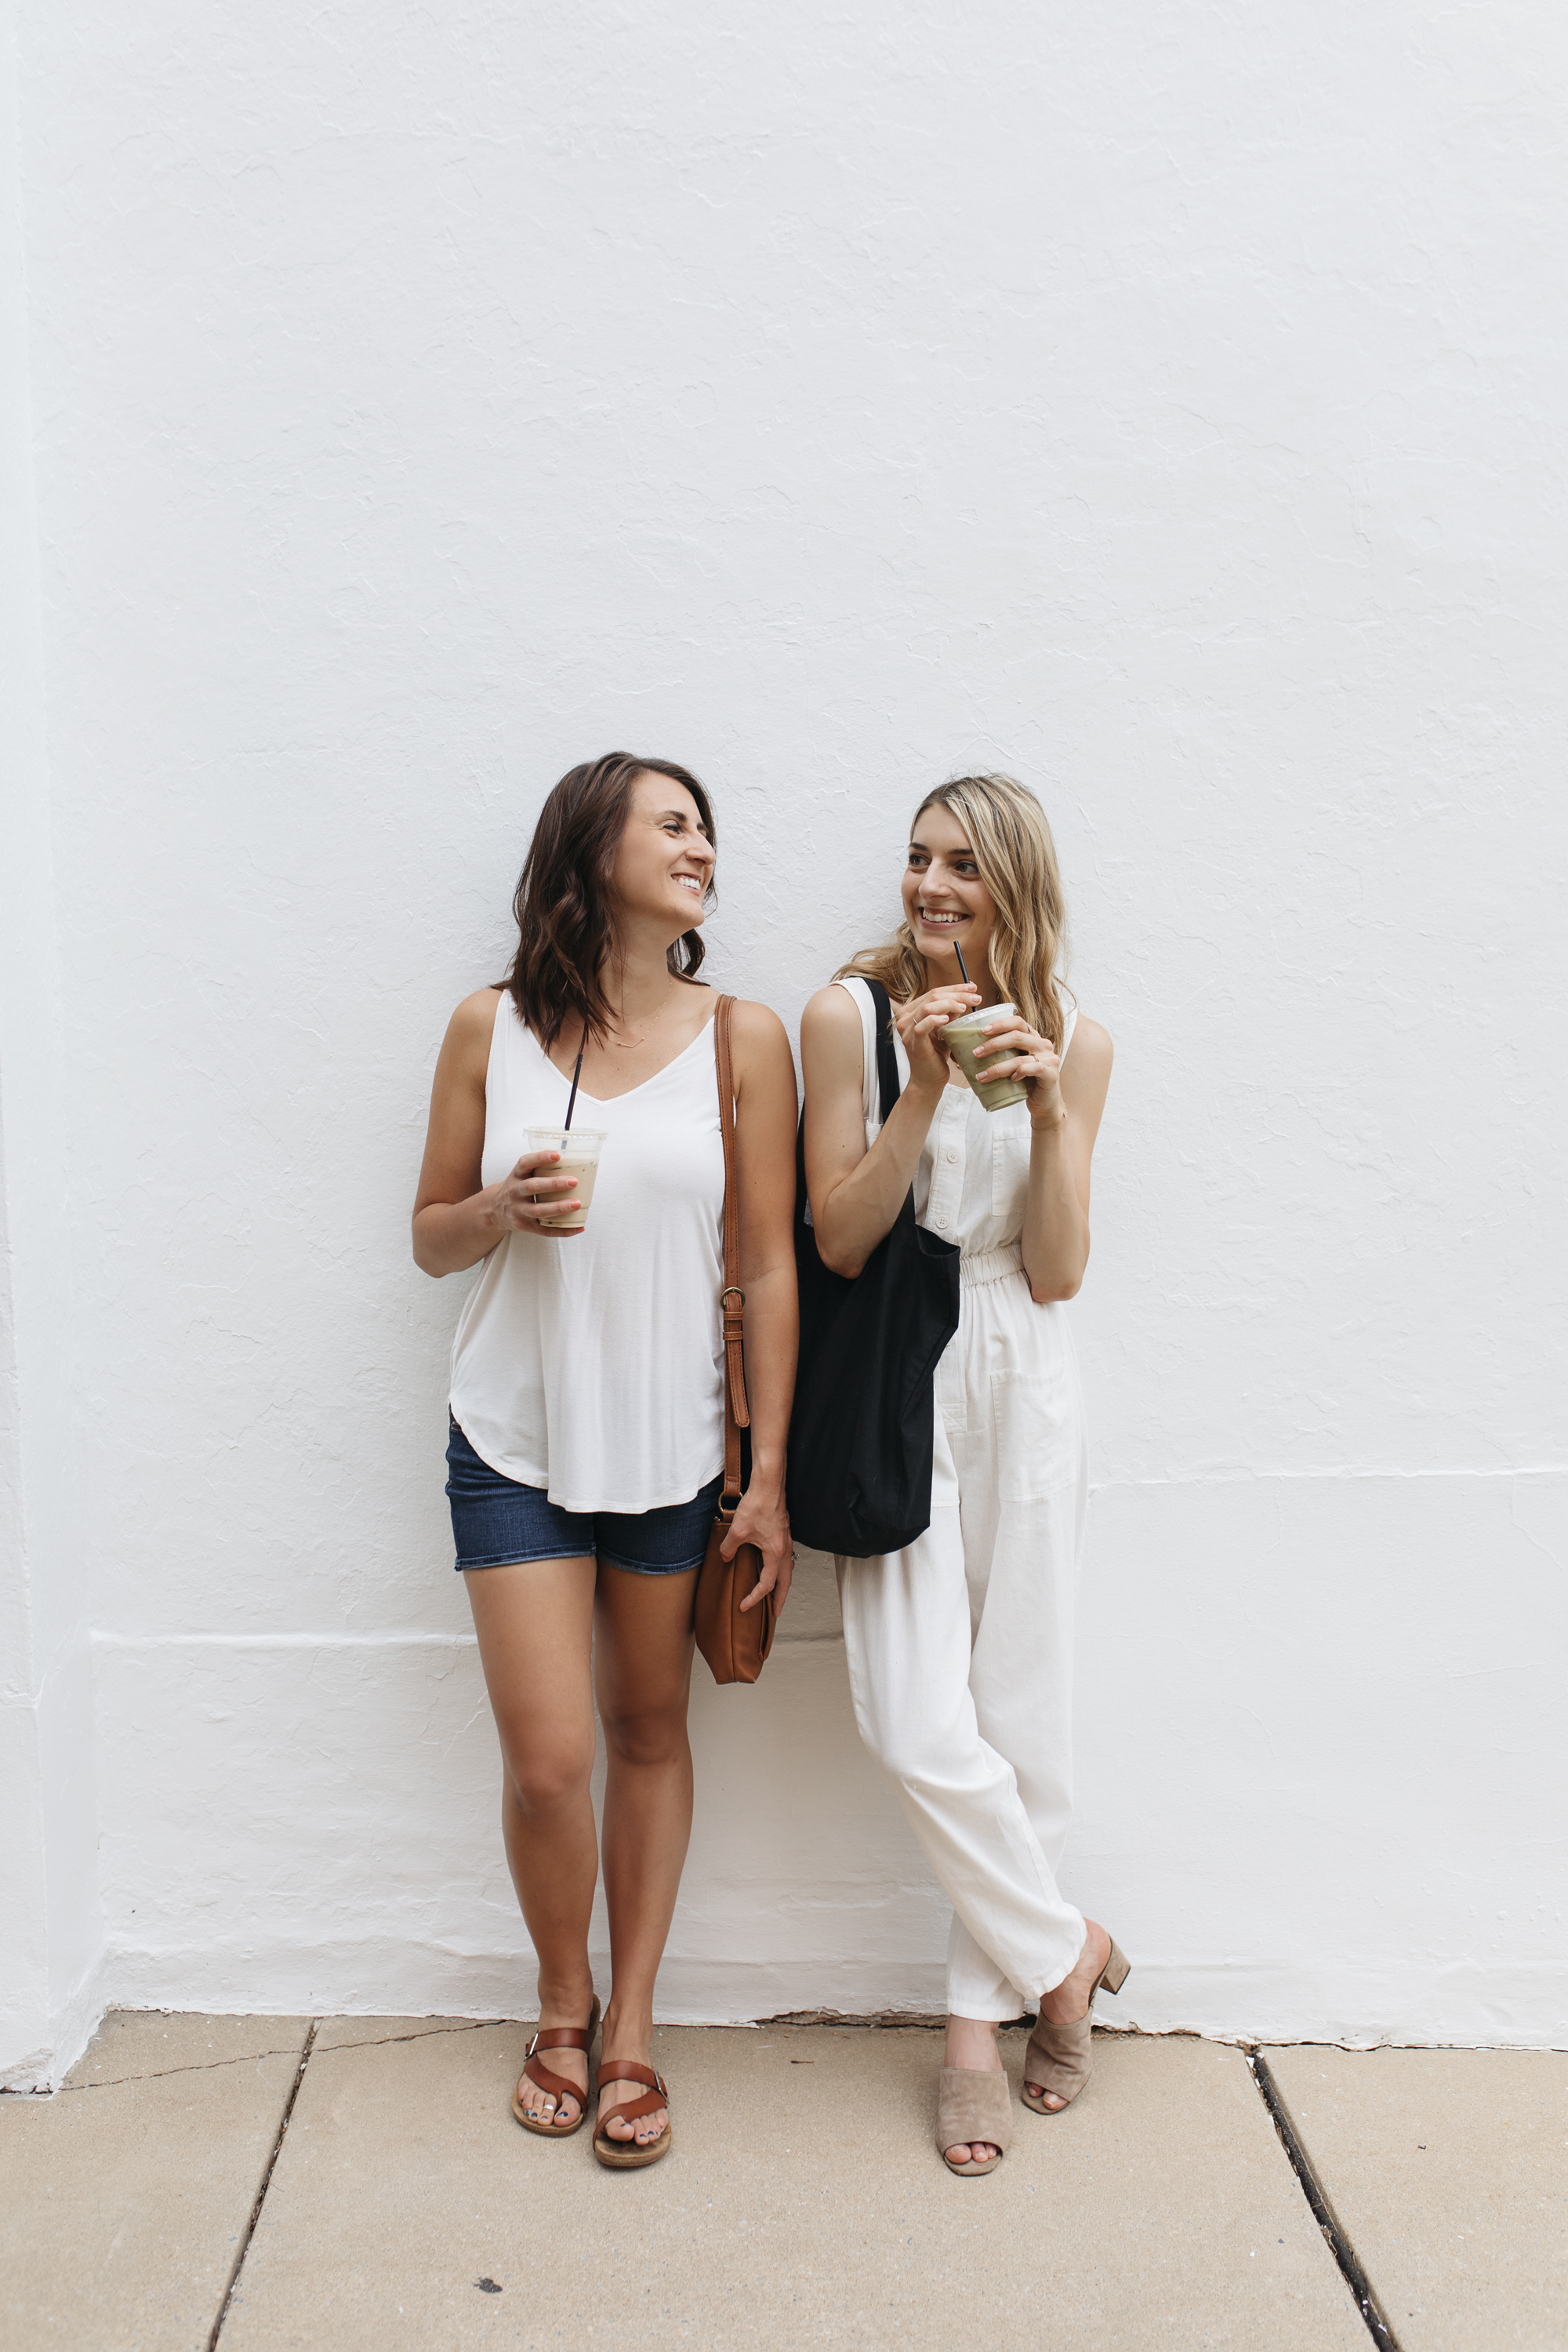 Stress management is important to creative lifestyle blogger Emily R Hess as she manages her business Luca Creative Co and makes time to spend with family and travel .